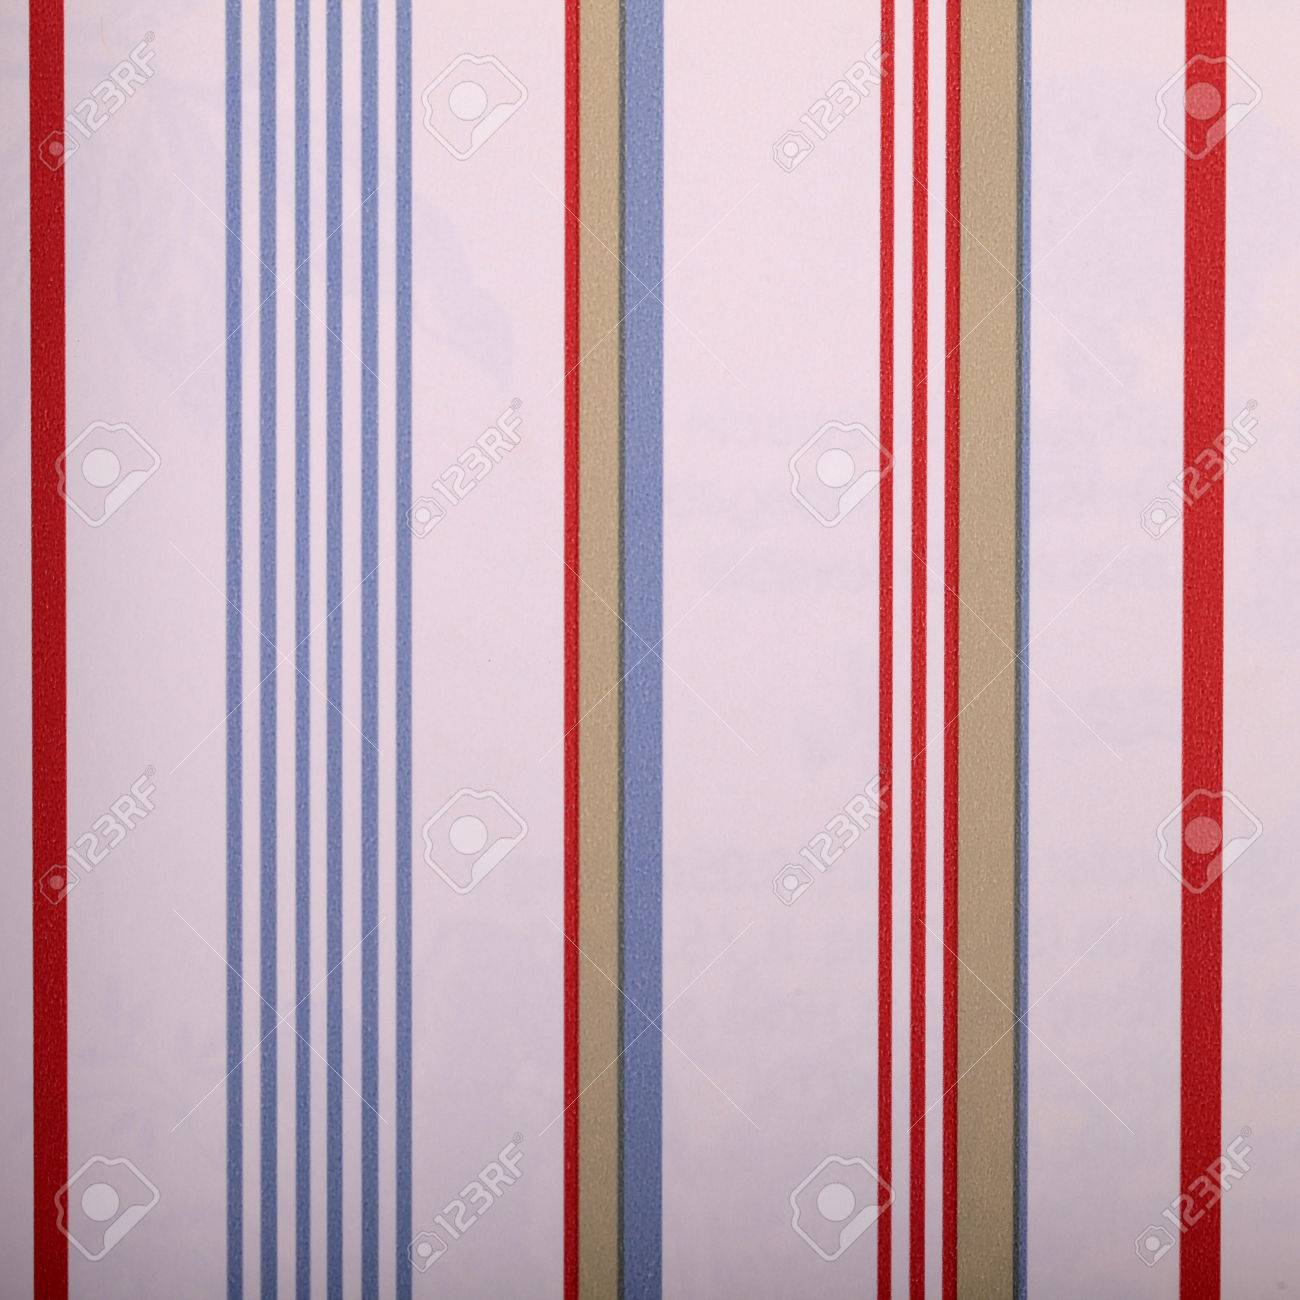 Vintage White Striped Wallpaper With Red And Blue Strips Square